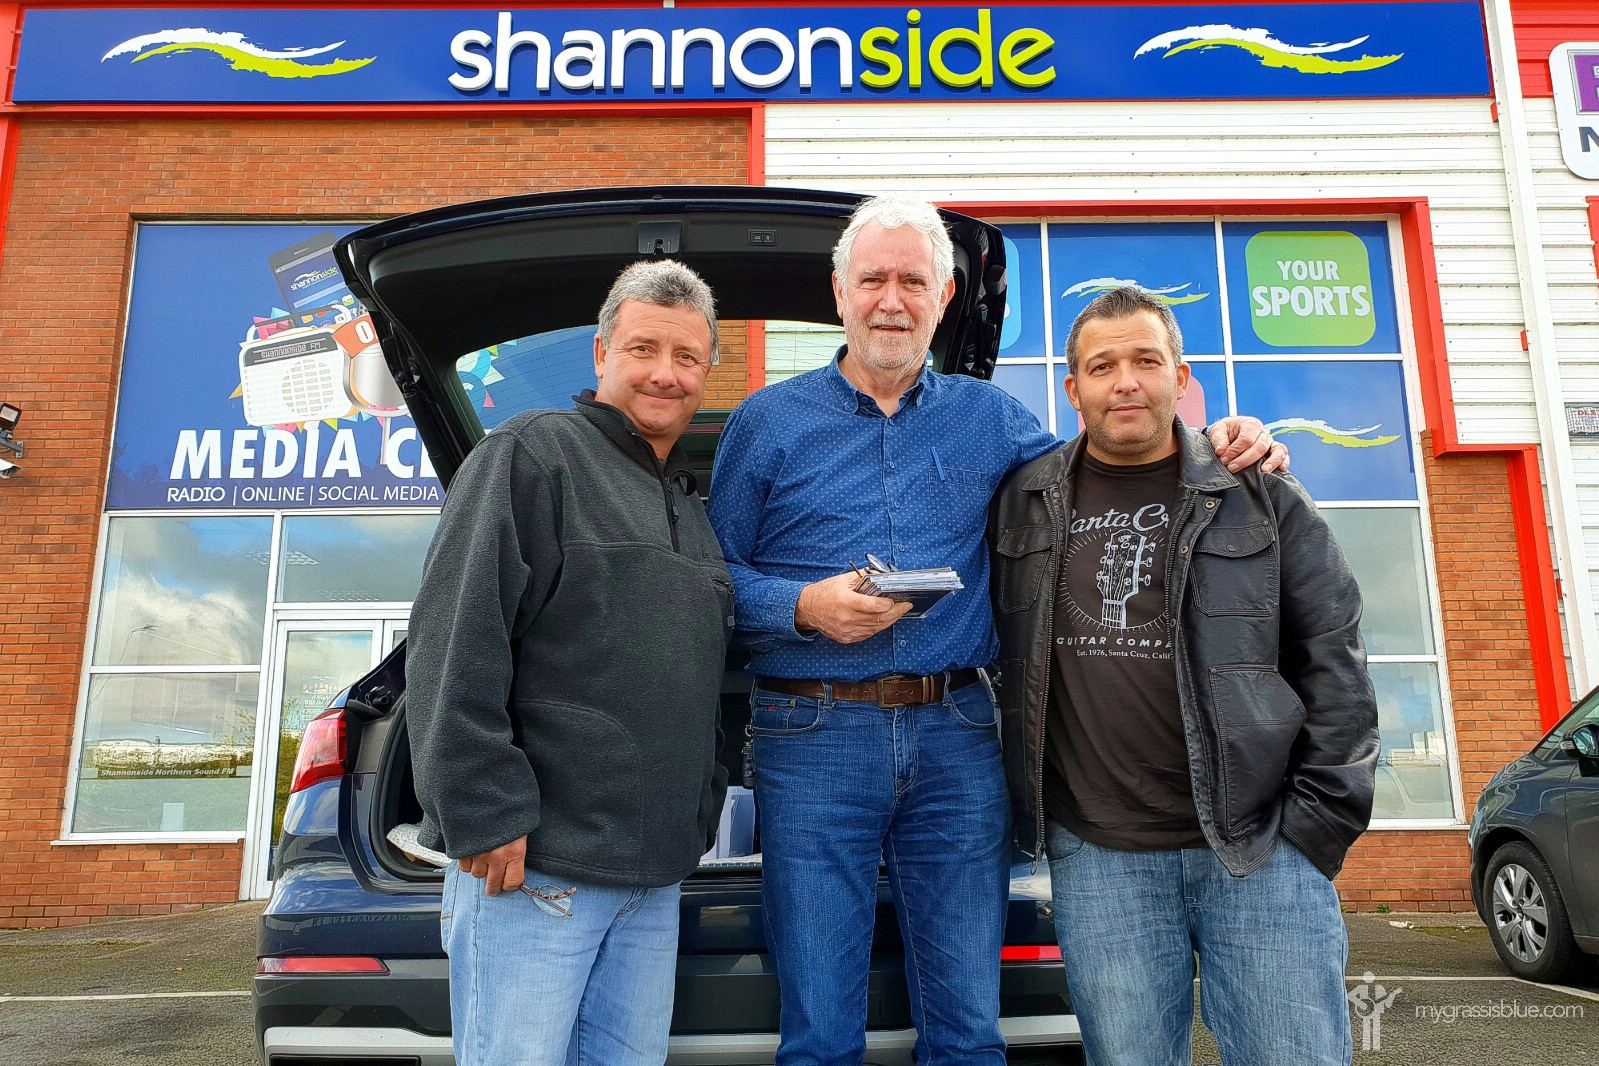 With Charlie McGettigan of Shannonside FM, Longford, Ireland. October 12, 2019.